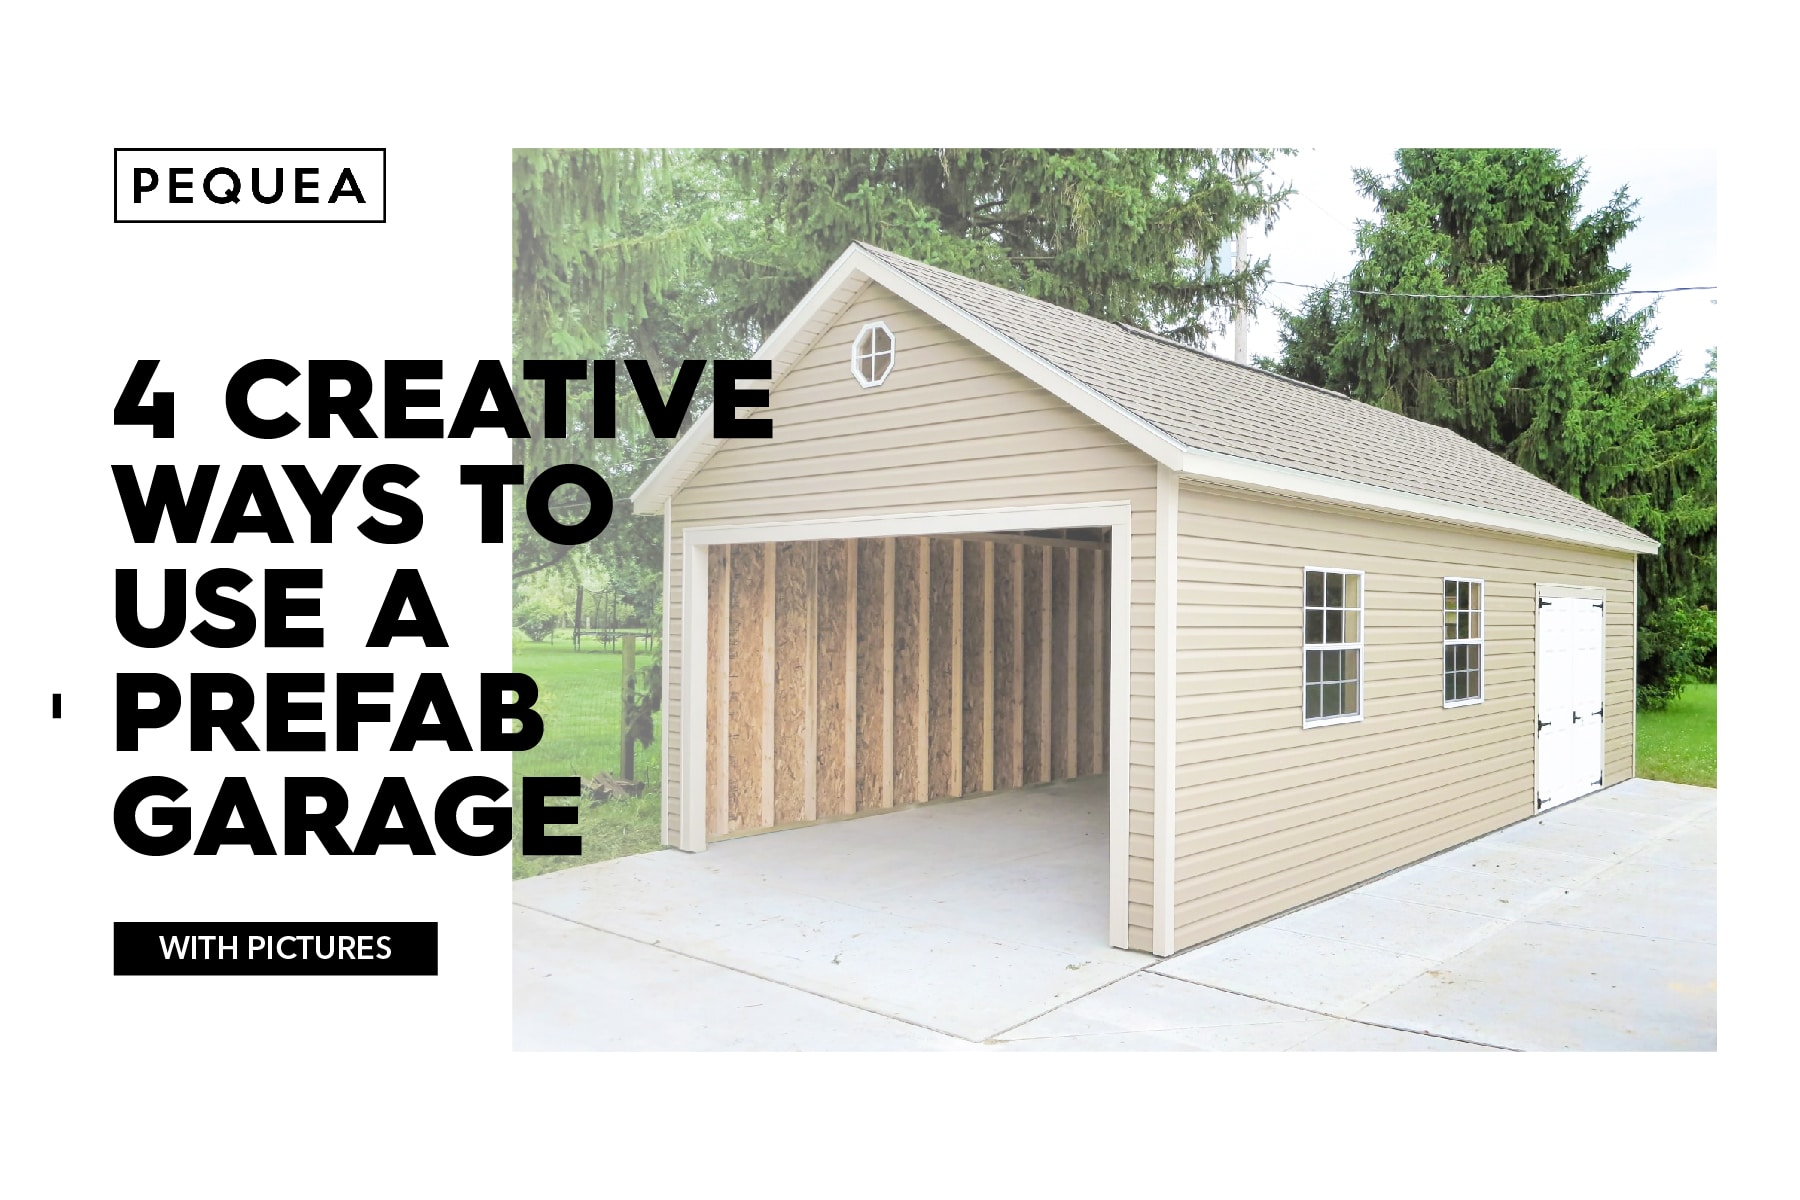 4 creative ways to use a prefab garage